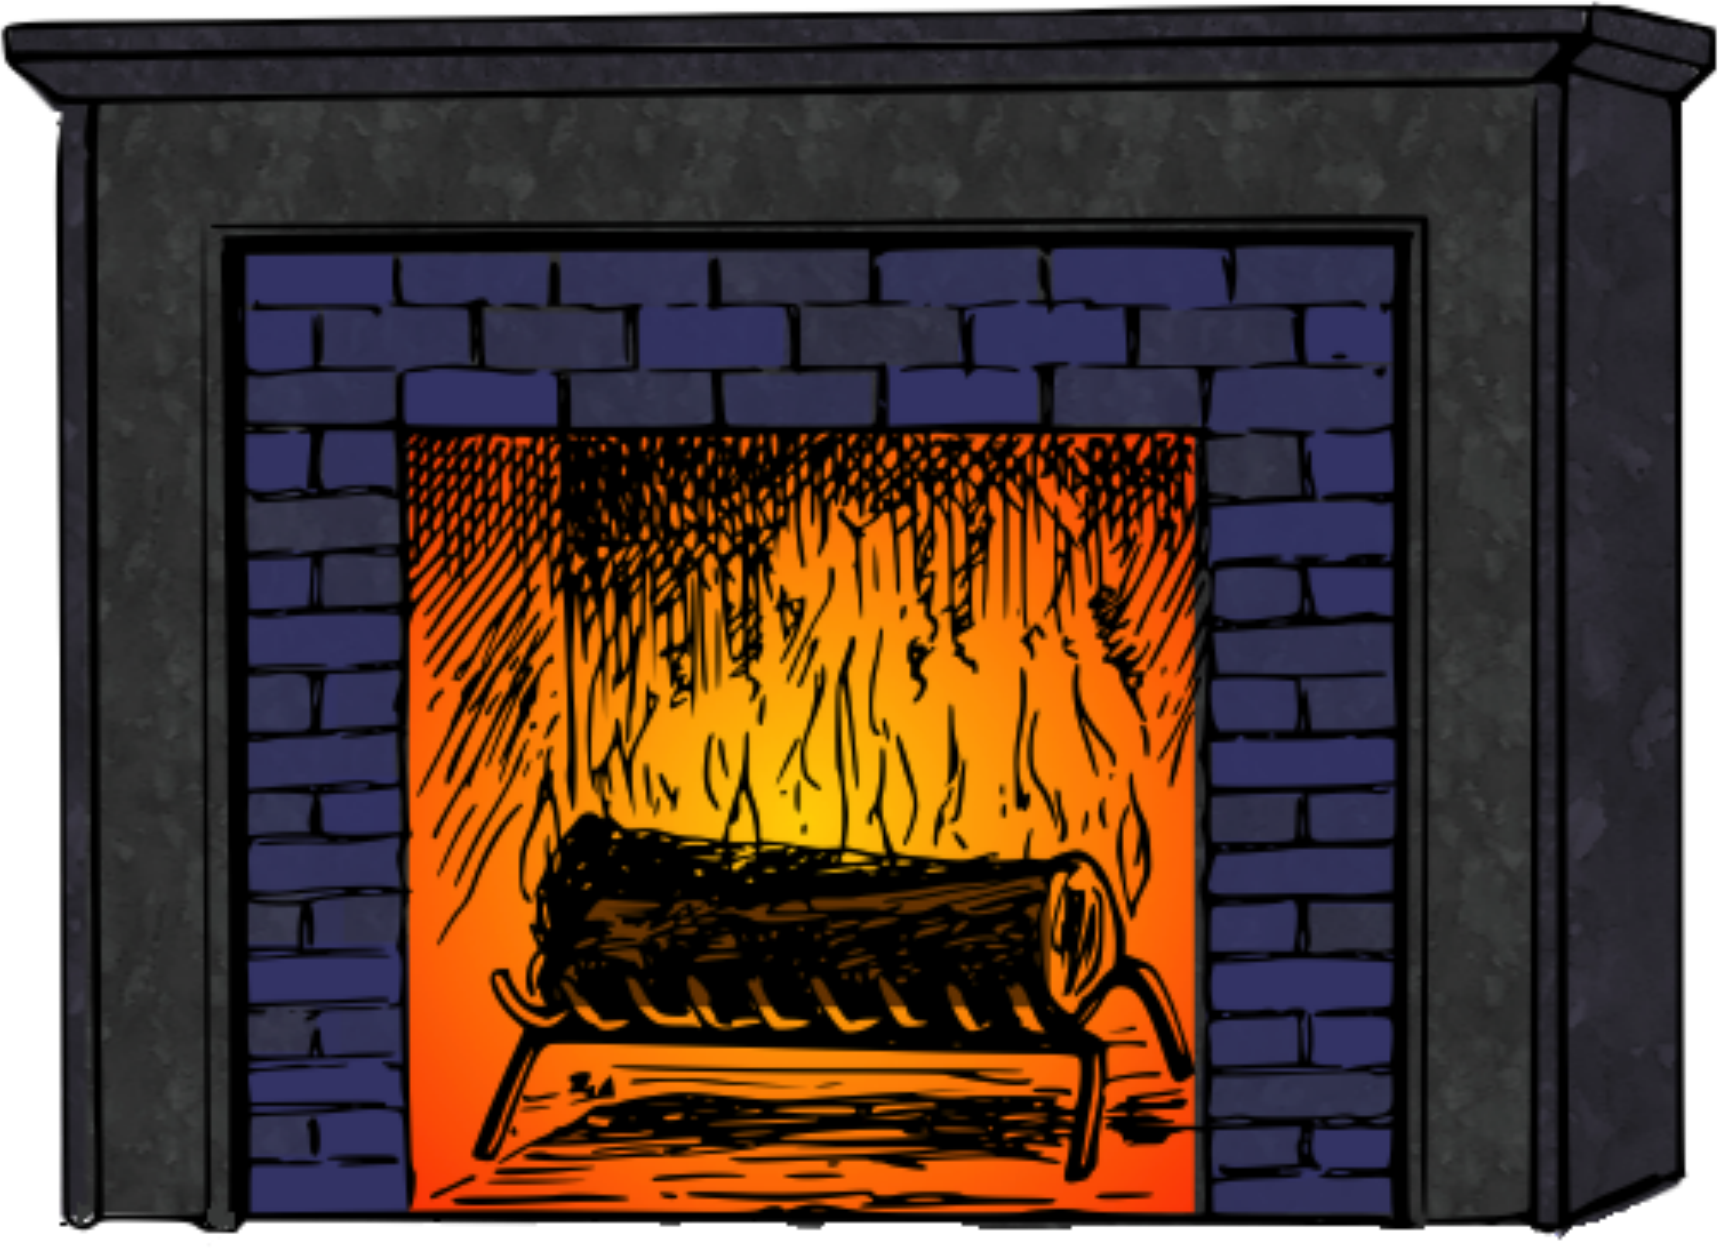 Fireplace 2 colored by Matherton